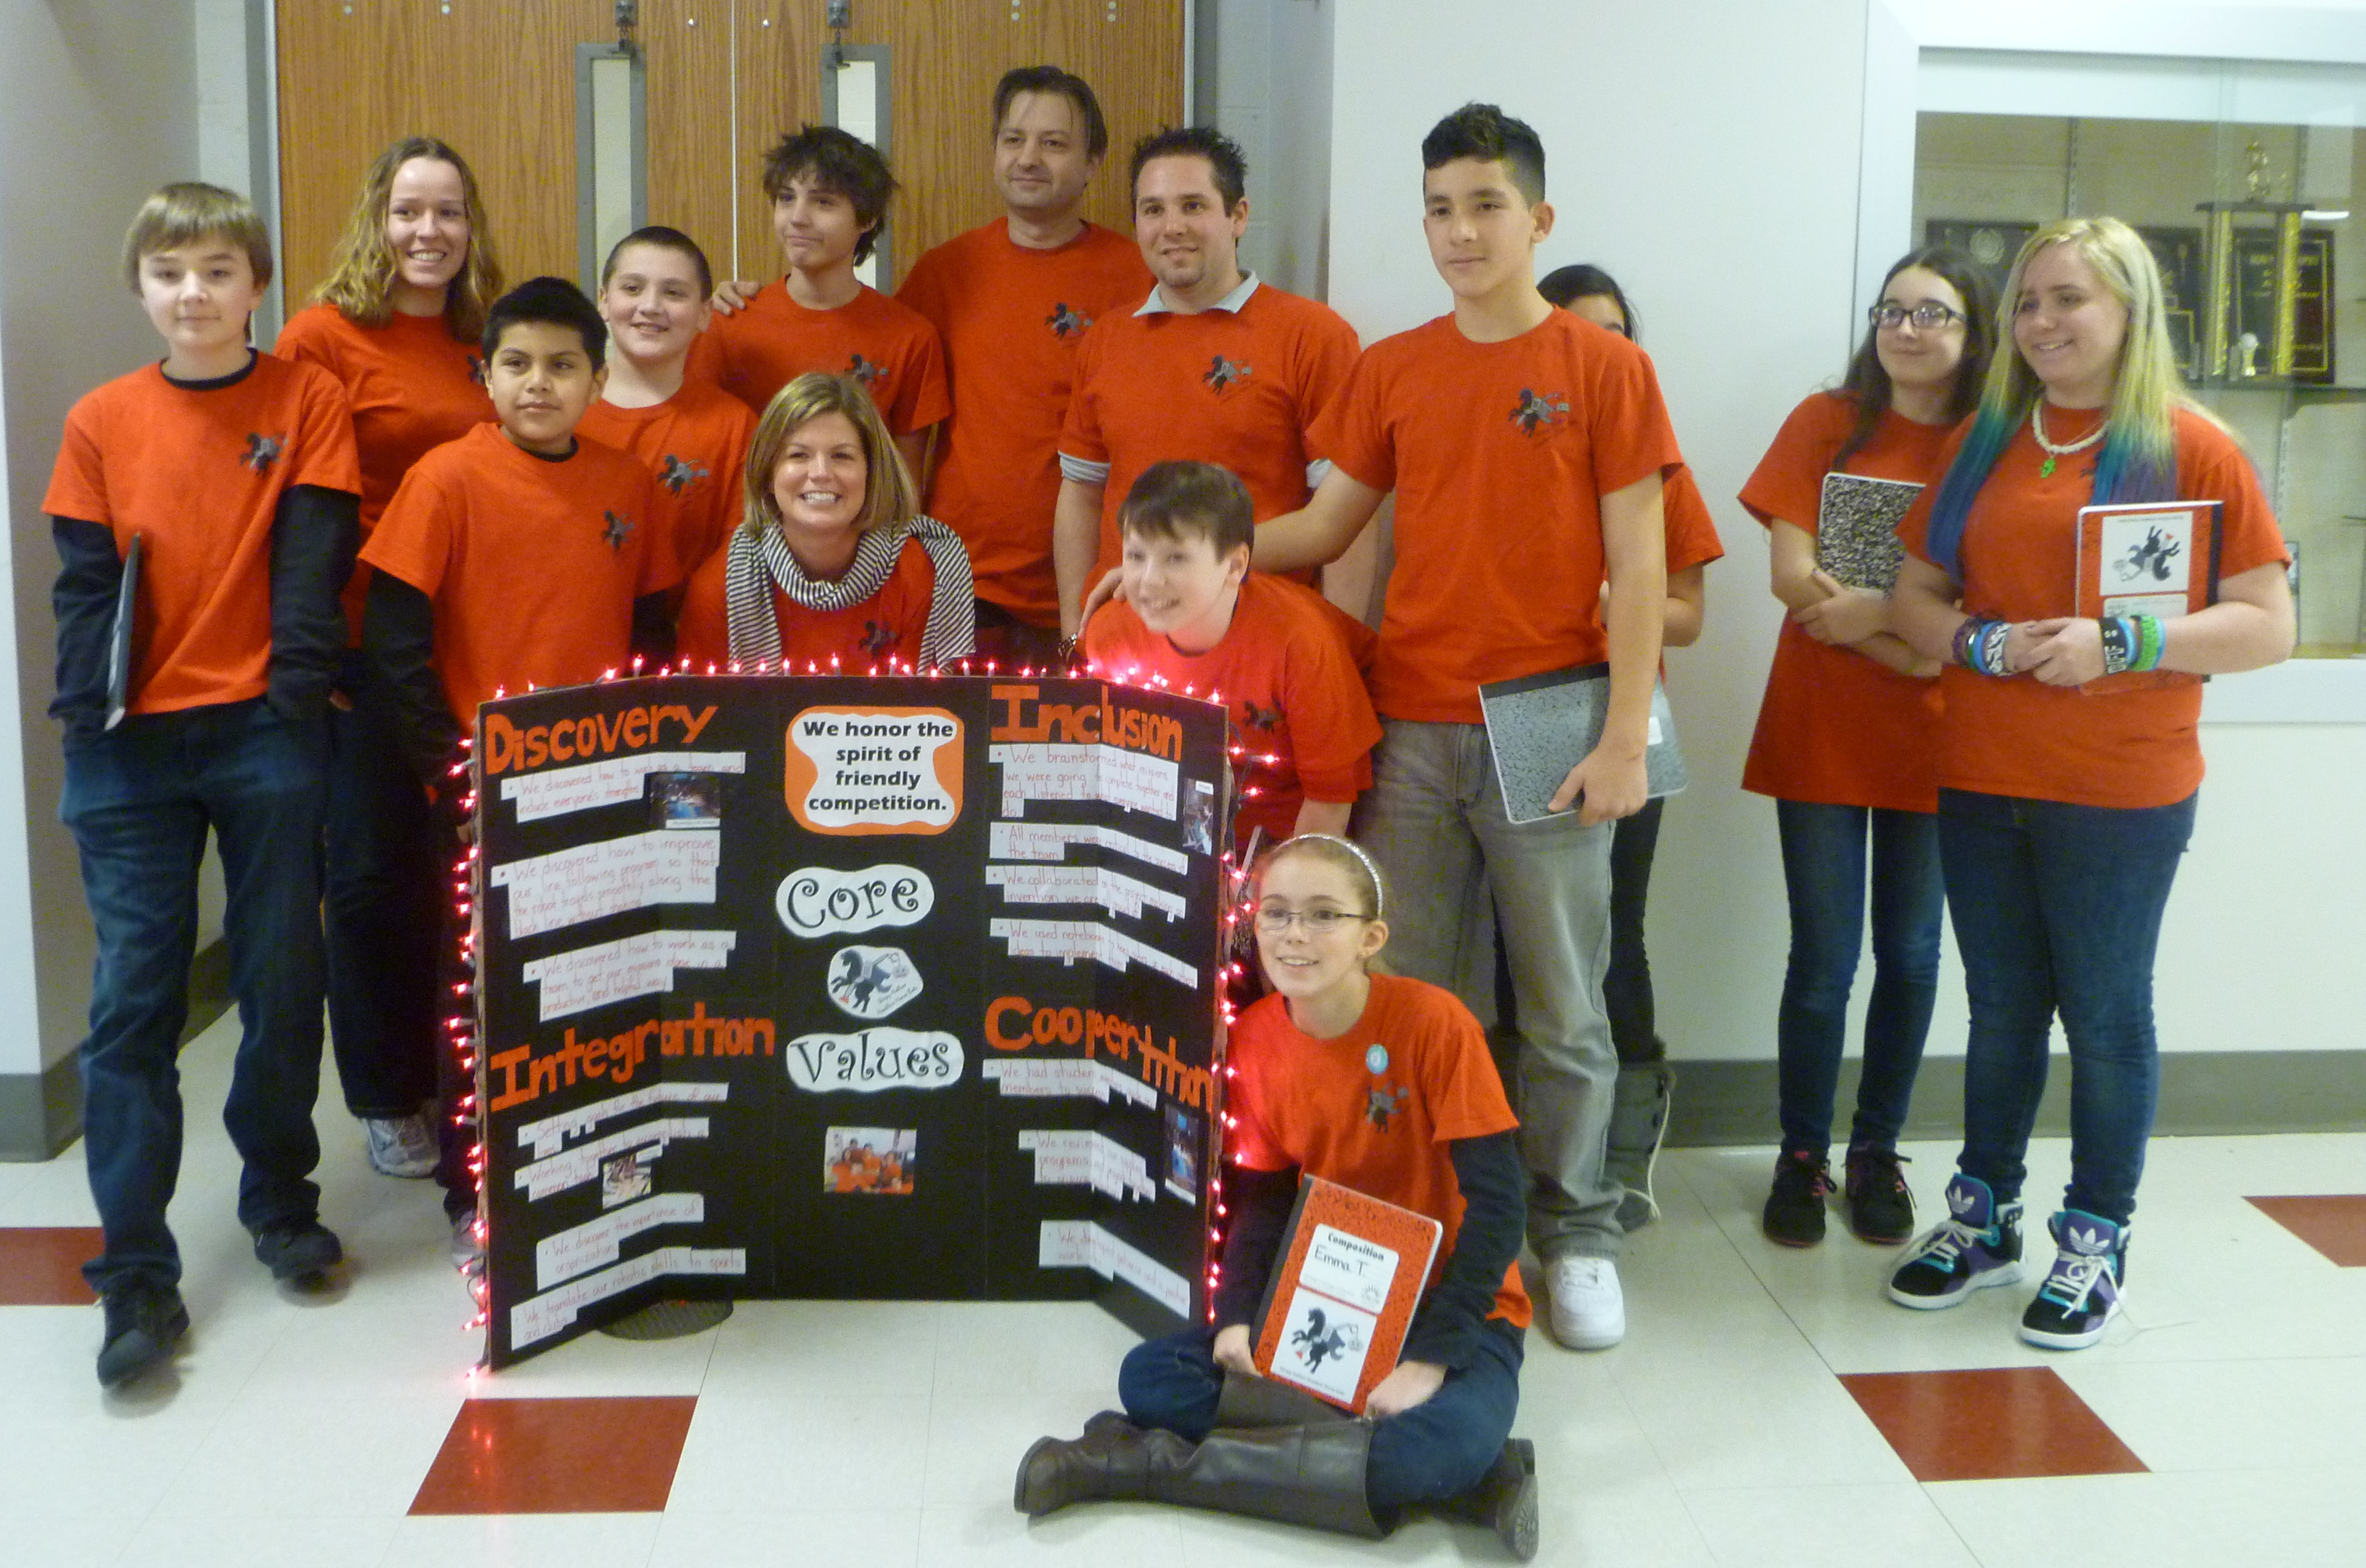 The Sleepy Hollow Headless Horse-Bots robotics team competed in the fifth annual Hudson Valley First Lego League Tournament on Saturday.